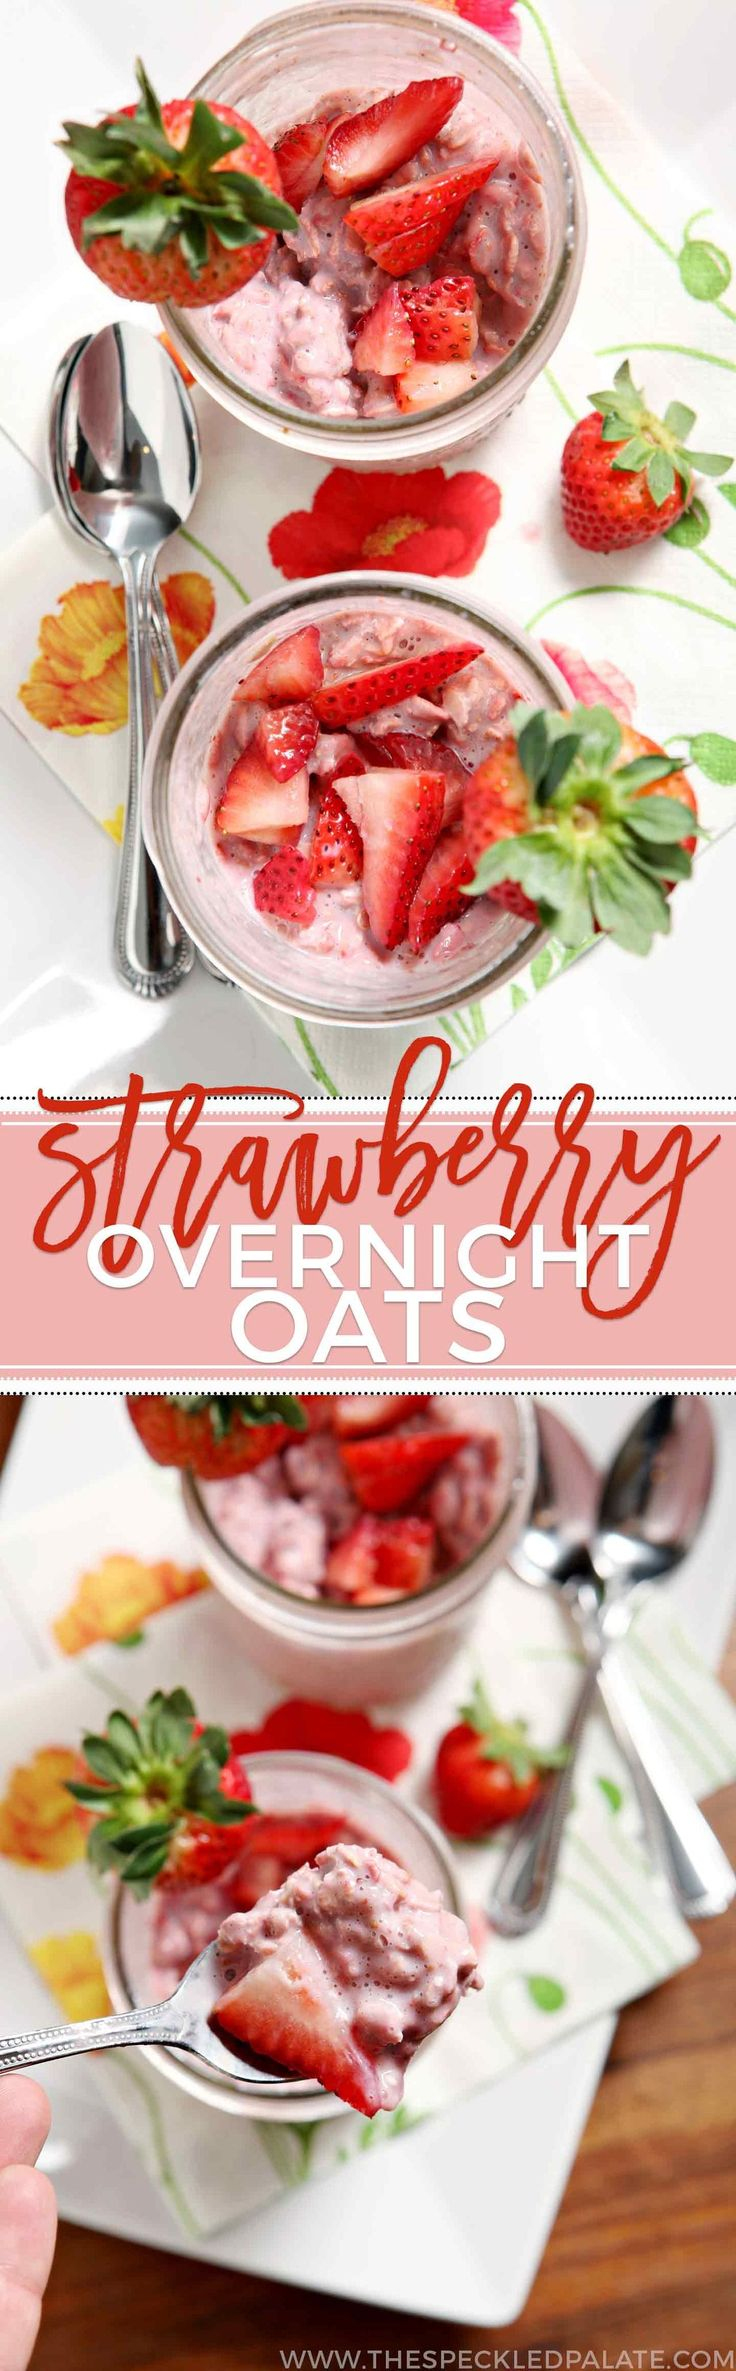 Maybe add some sugar maybe vanilla greek yogurt + cinnamon or vanilla or something Prepare breakfast the night before by mixing up oats, strawberries and milk in a mason jar, then letting them hang out overnight to create these delicious Strawberry Overnight Oats. Enjoy cold the next morning, topped with fresh strawberries (and some dark chocolate, if you're feeling decadent!)